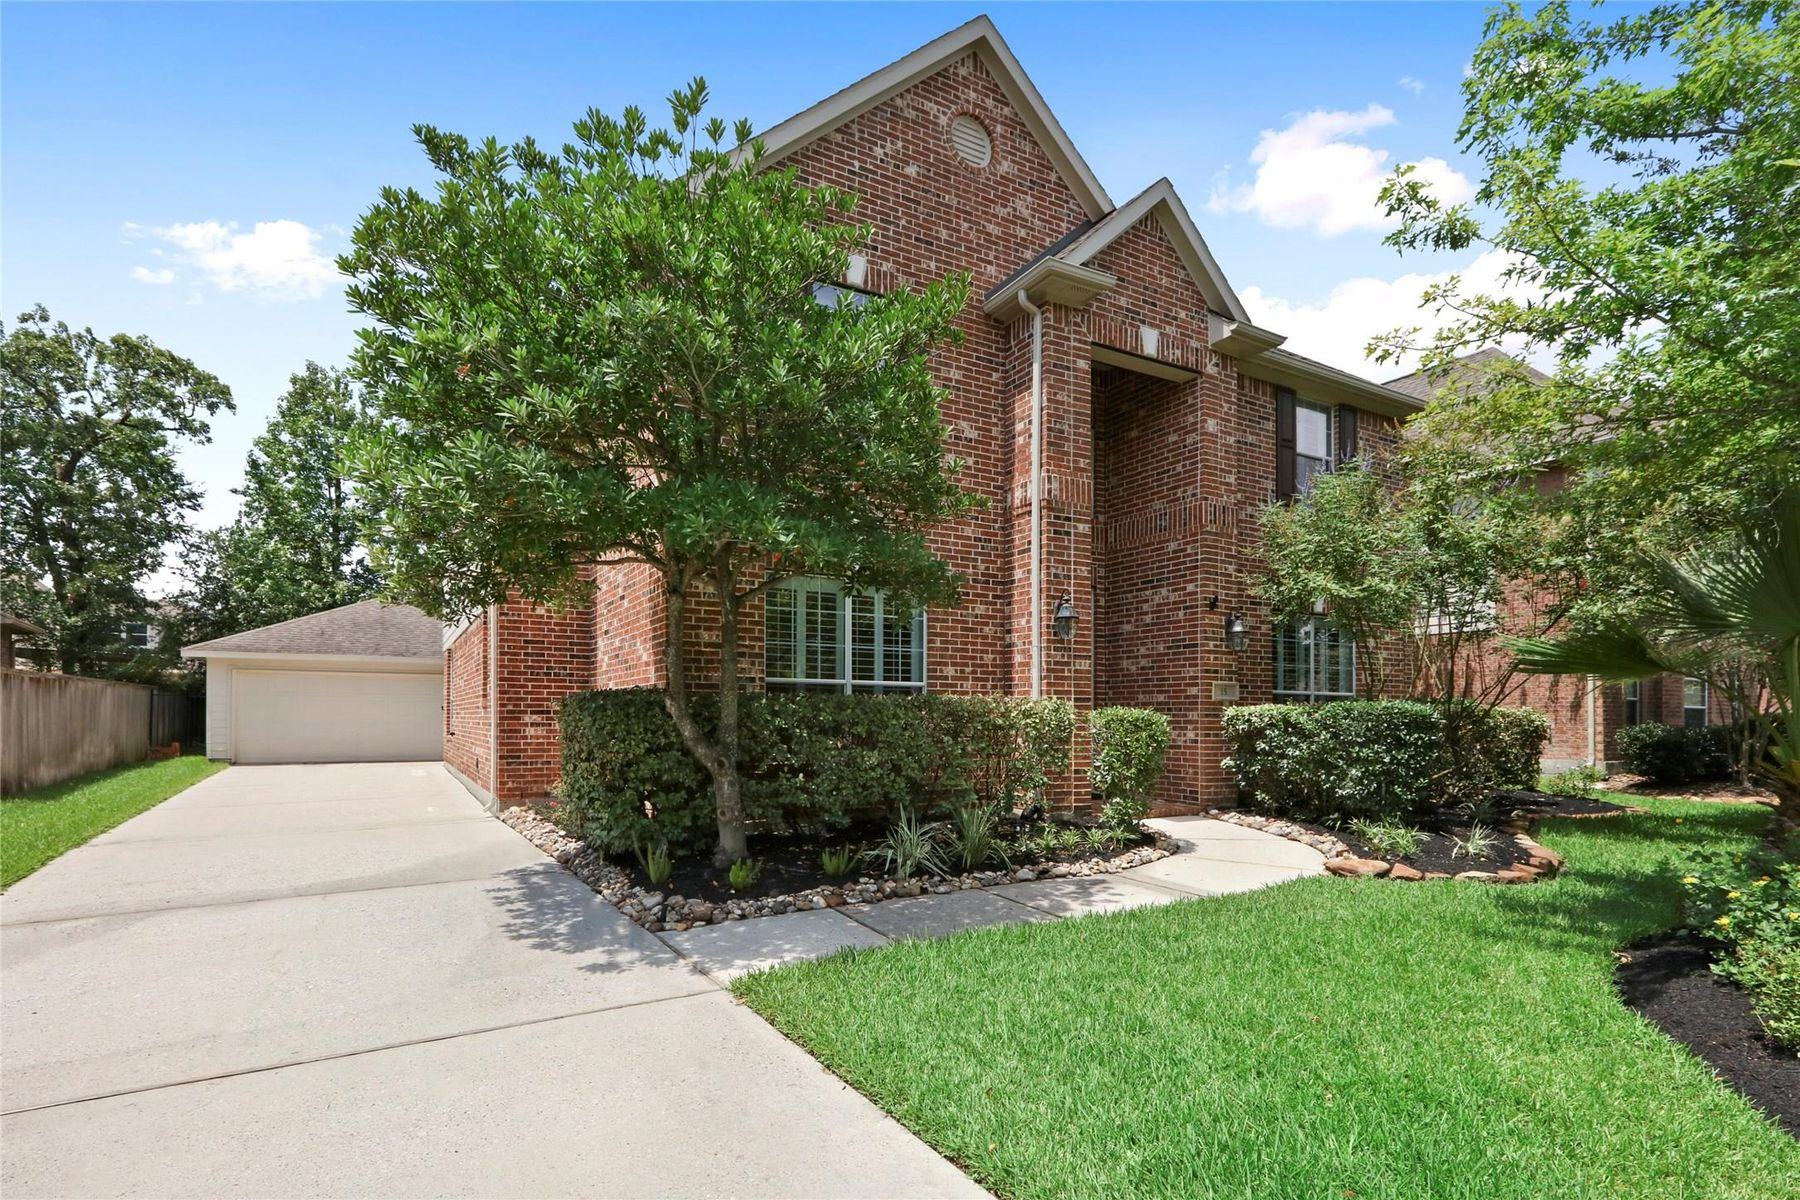 Single Family Homes for Sale at 15 Kittatinny Place The Woodlands, Texas 77389 United States